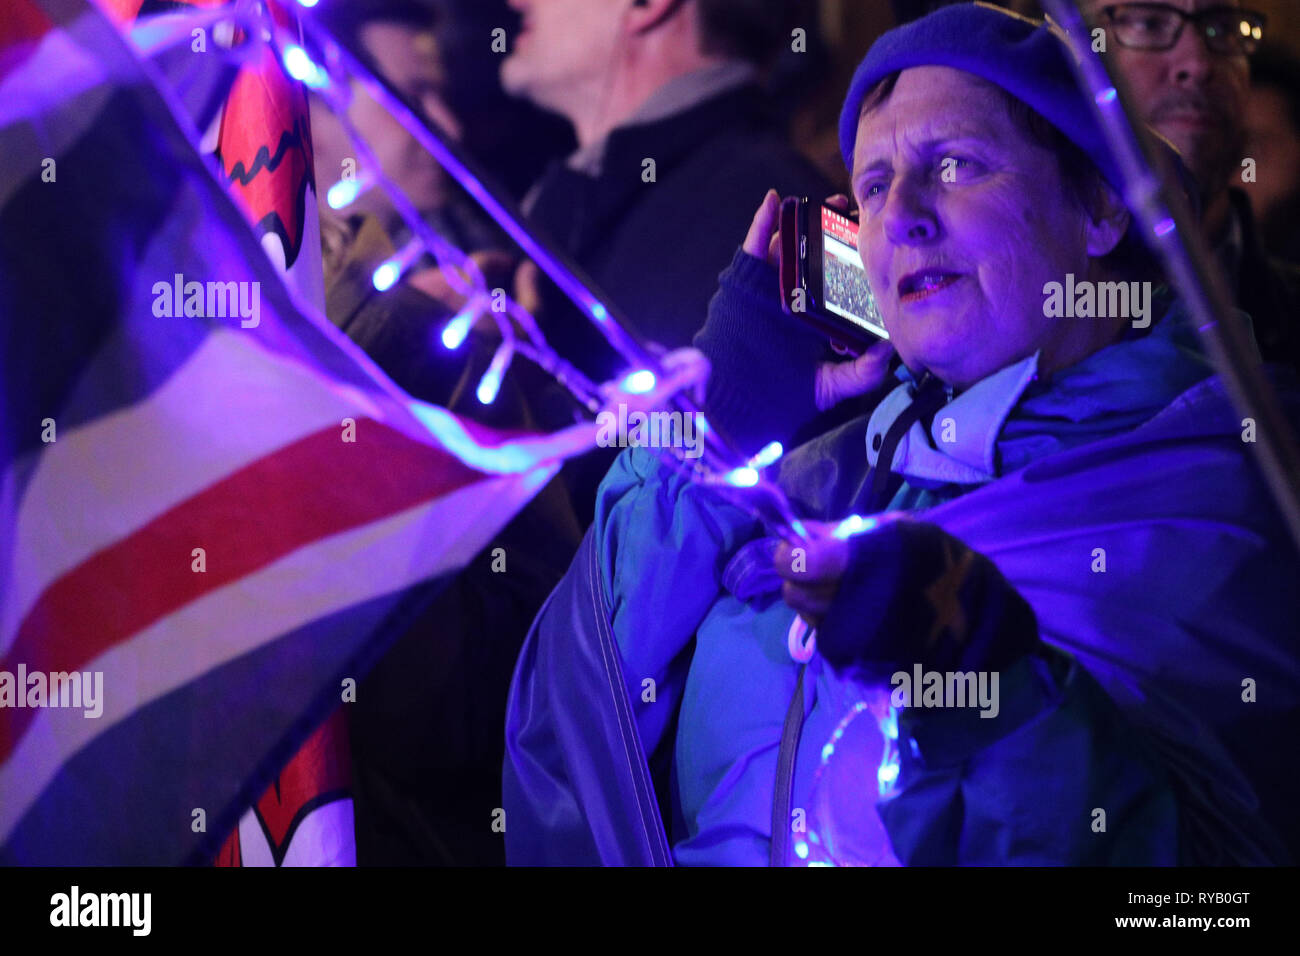 Westminster, London, UK. 13th Mar, 2019. Remainers eagerly await the results of the no-deal Brexit vote in Parliament, and celebrate and cheer outside the Houses of Parilament as news breaks that the no deal has been voted down. Credit: Imageplotter/Alamy Live News - Stock Image